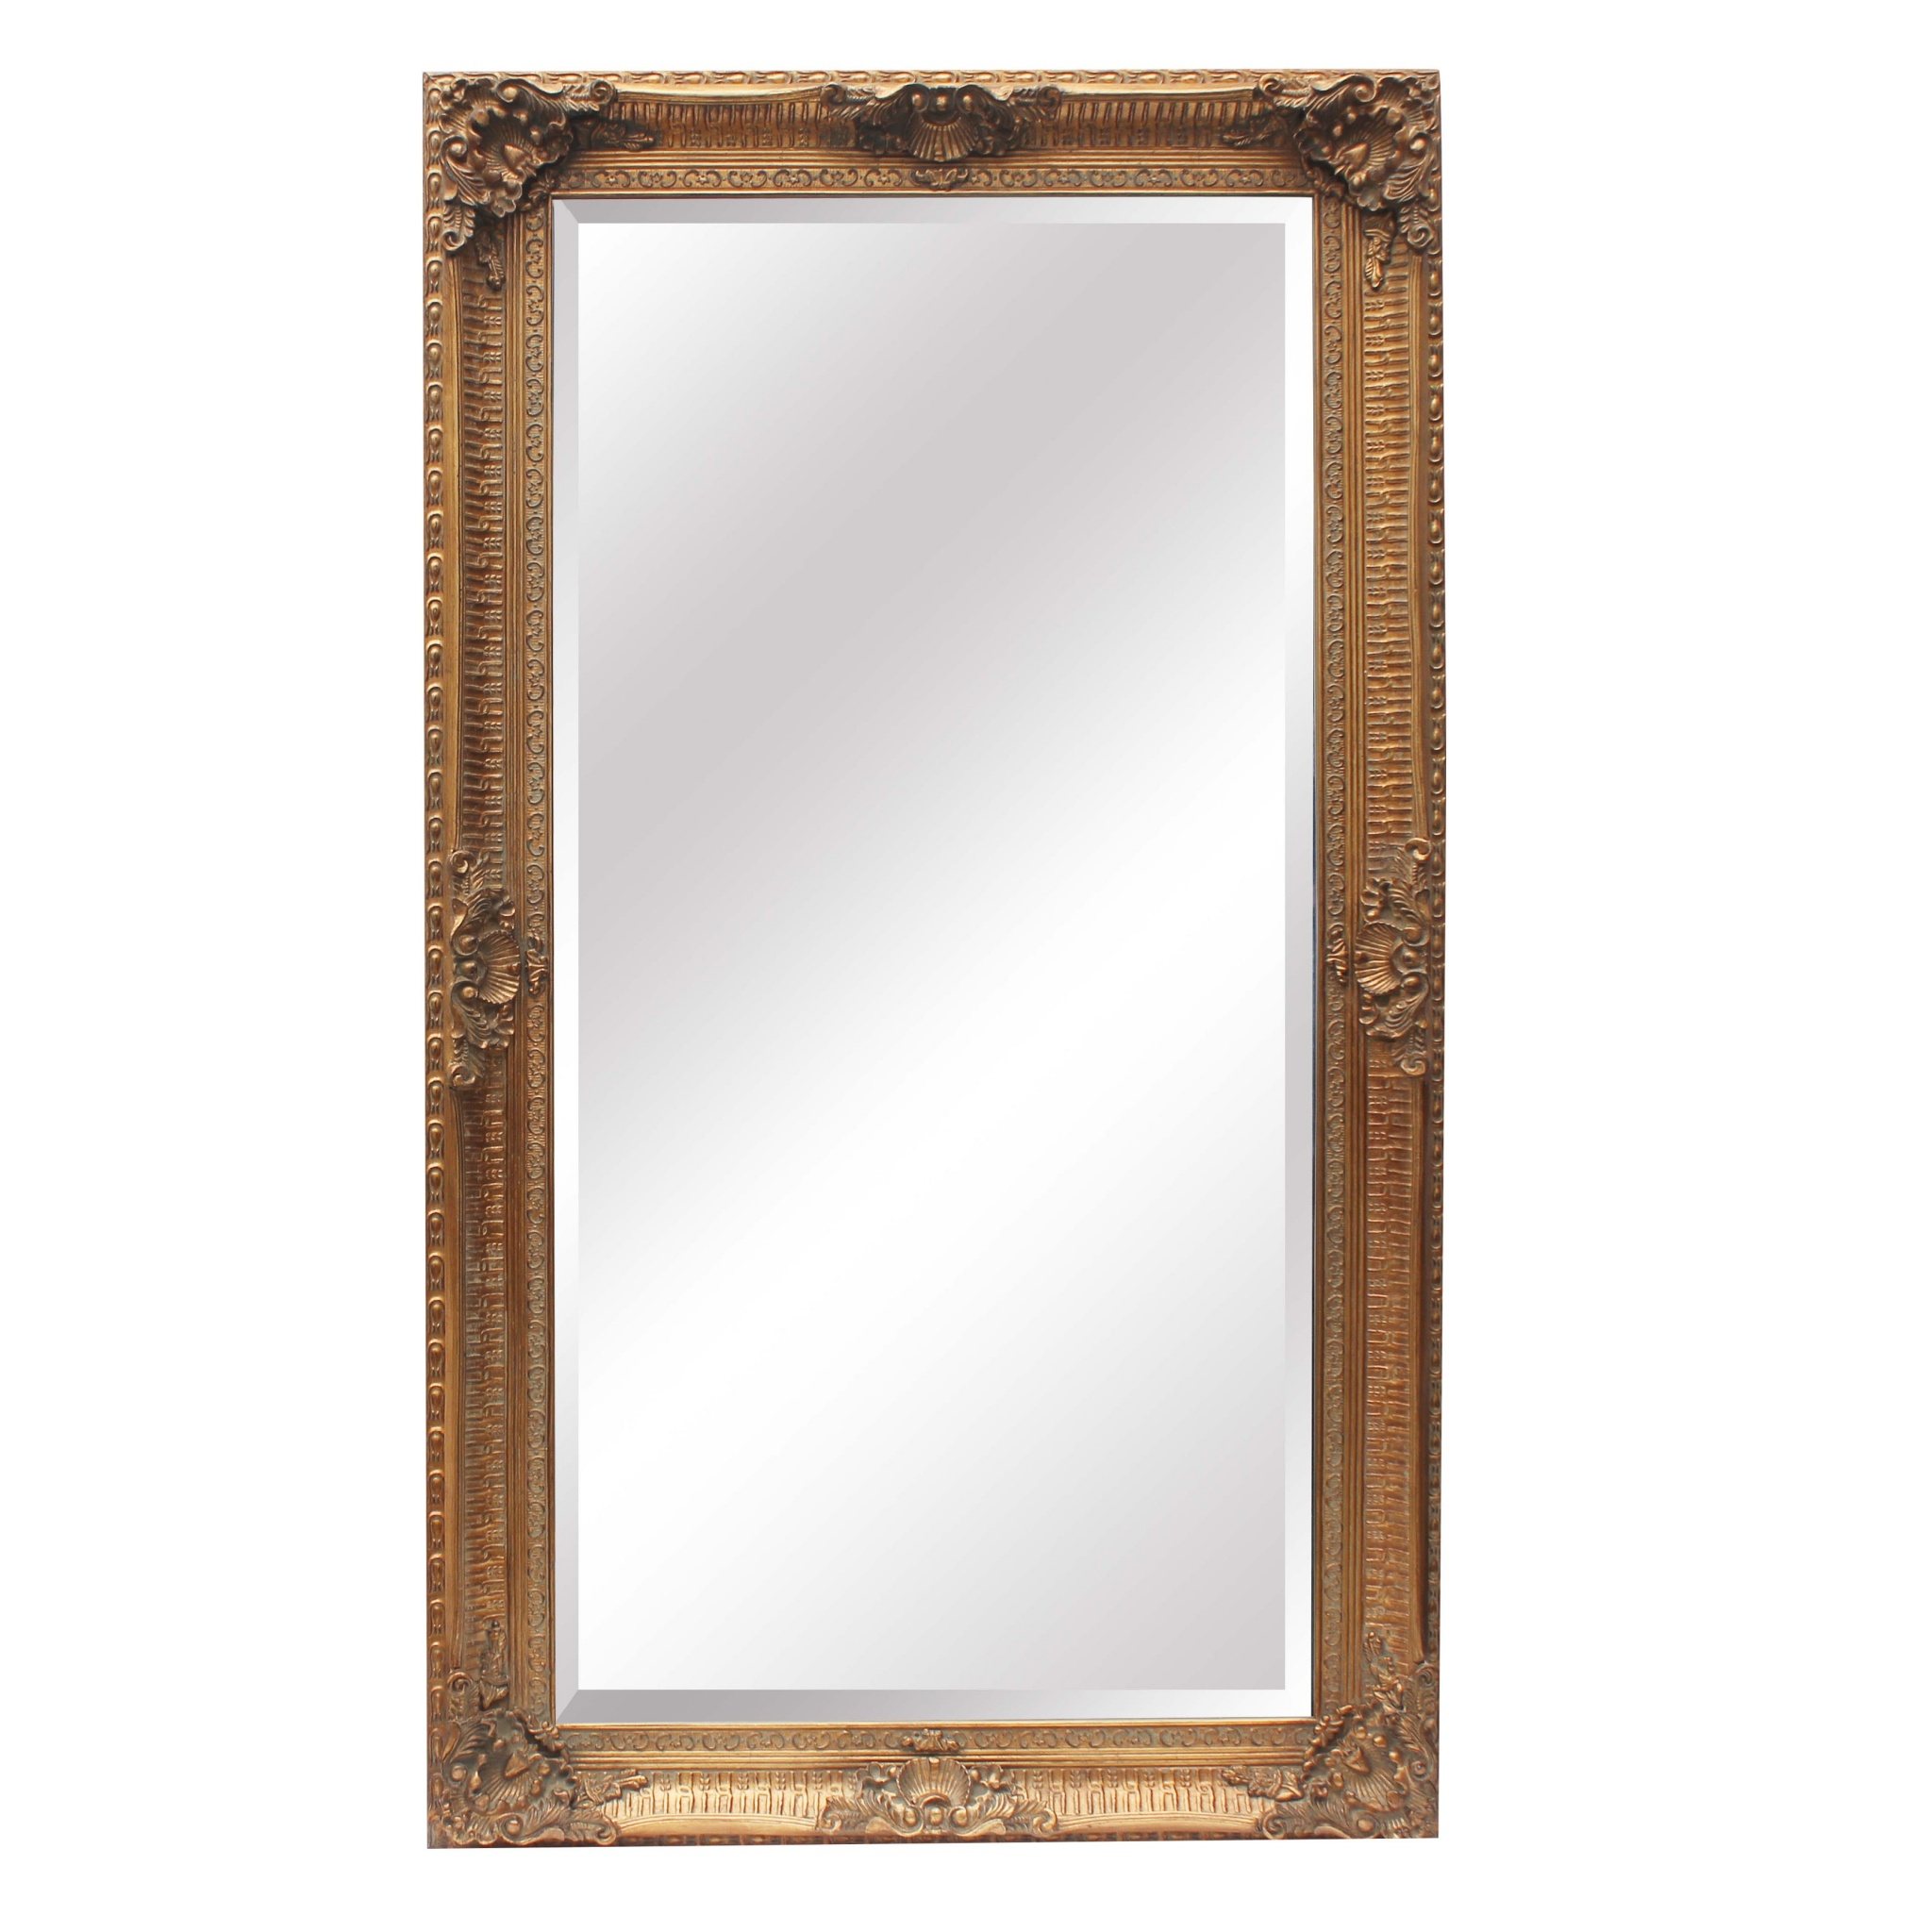 Francoise Extra Large Ornate Antiqued Gold Mirror La